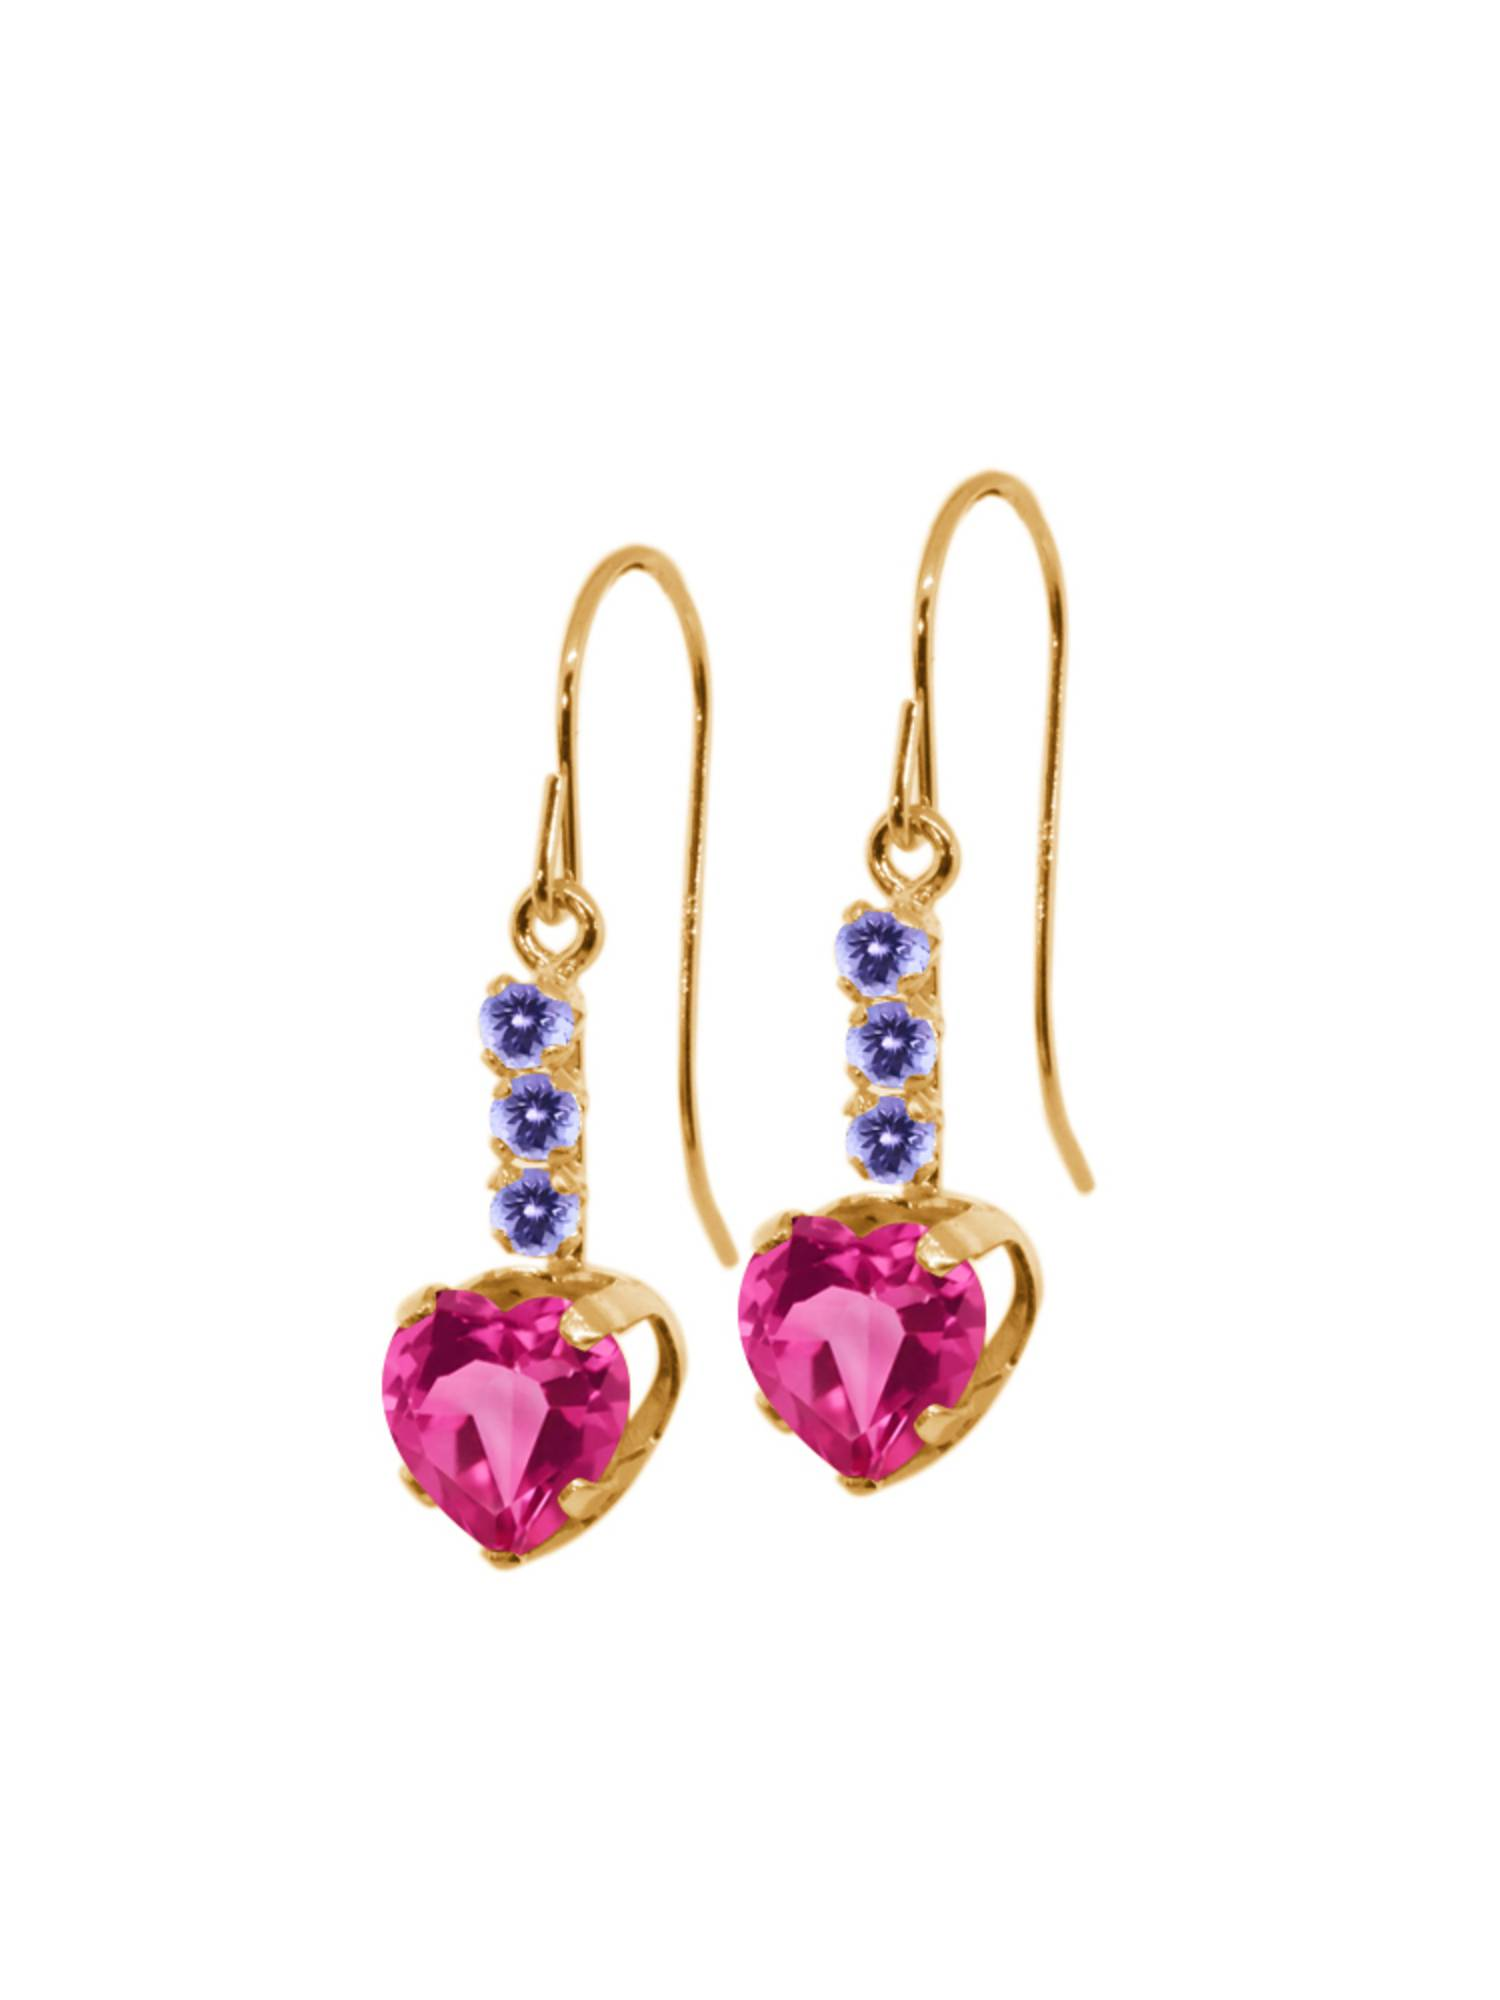 2.38 Ct Pink Created Sapphire Blue Tanzanite 14K Yellow Gold Earrings by